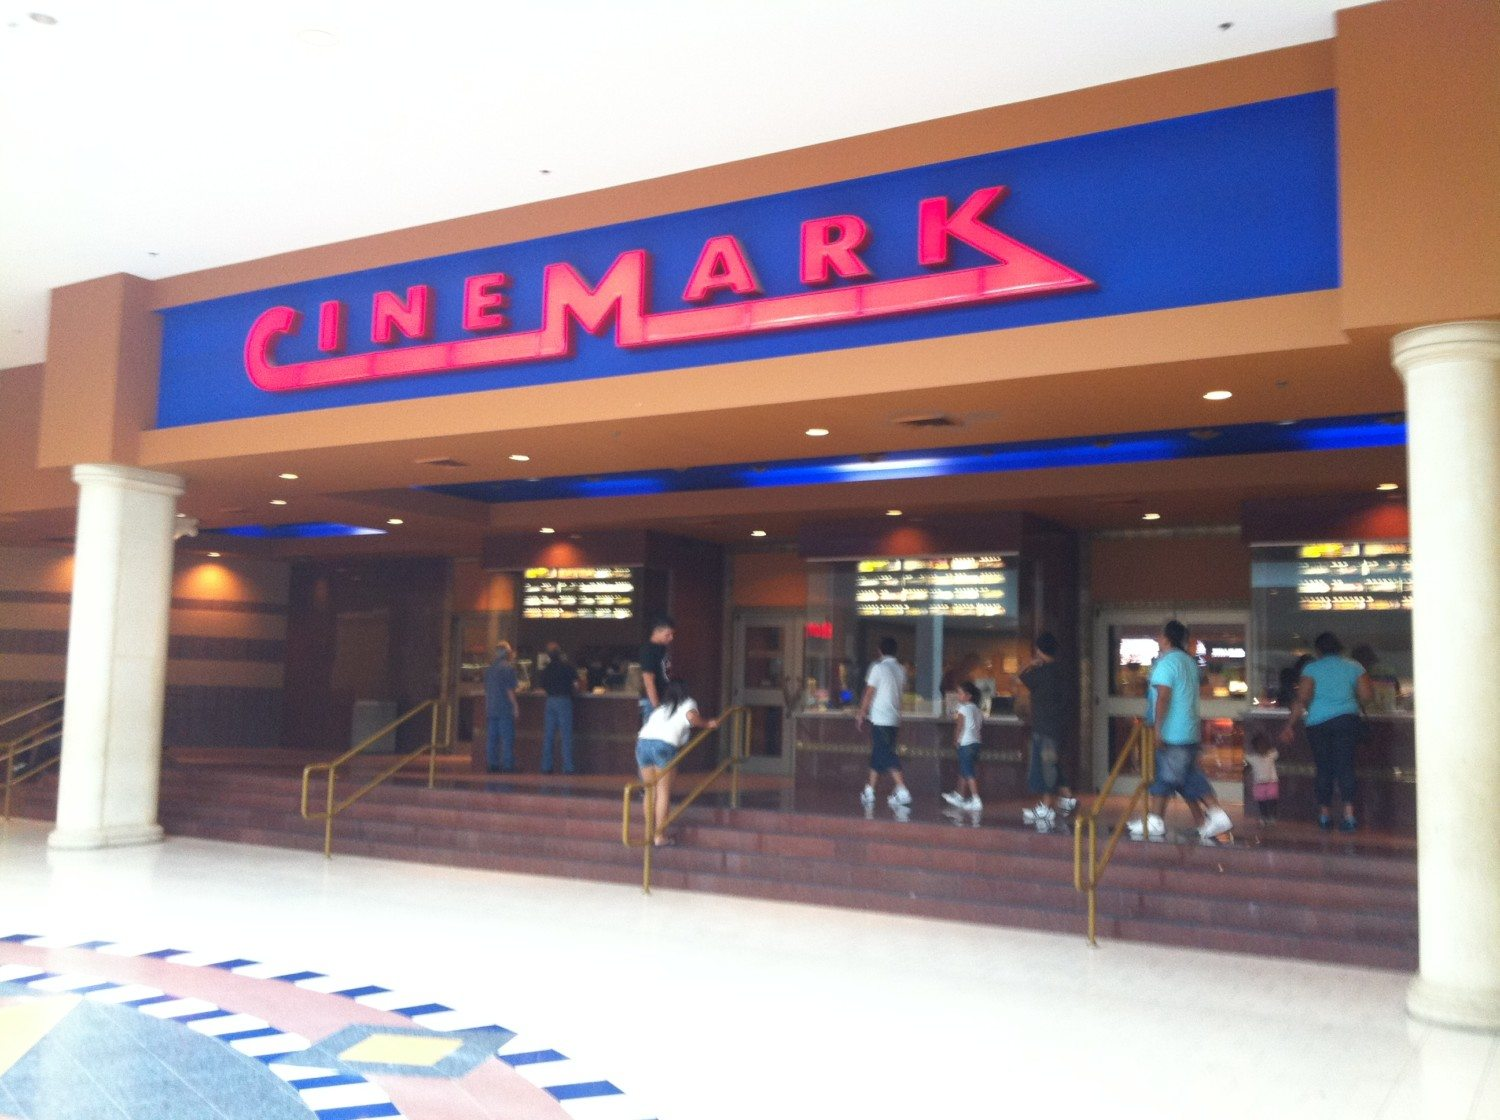 Glasregal Platte Cinemark Bans All Big Bags In Its Theaters Simplemost